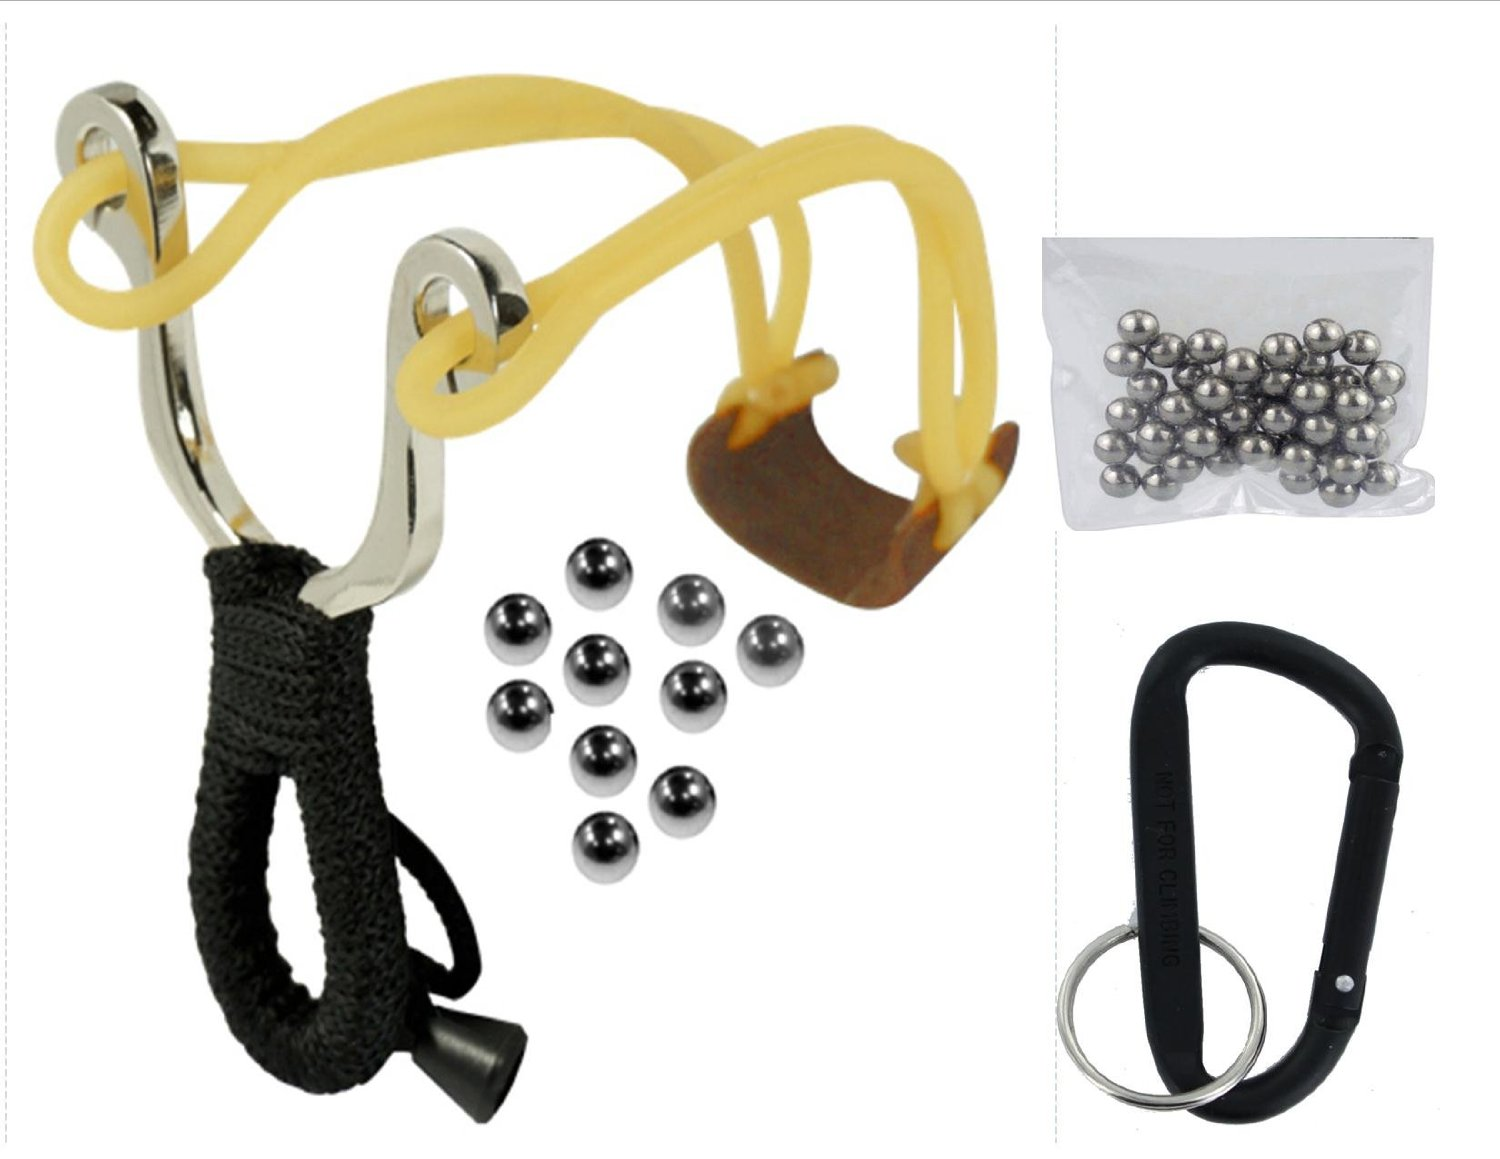 VAS EMERGENCY SURVIVAL COMPACT SLING SHOT & 10 PK 6MM / 50 PK 8MM AMMO WITH CARABINER